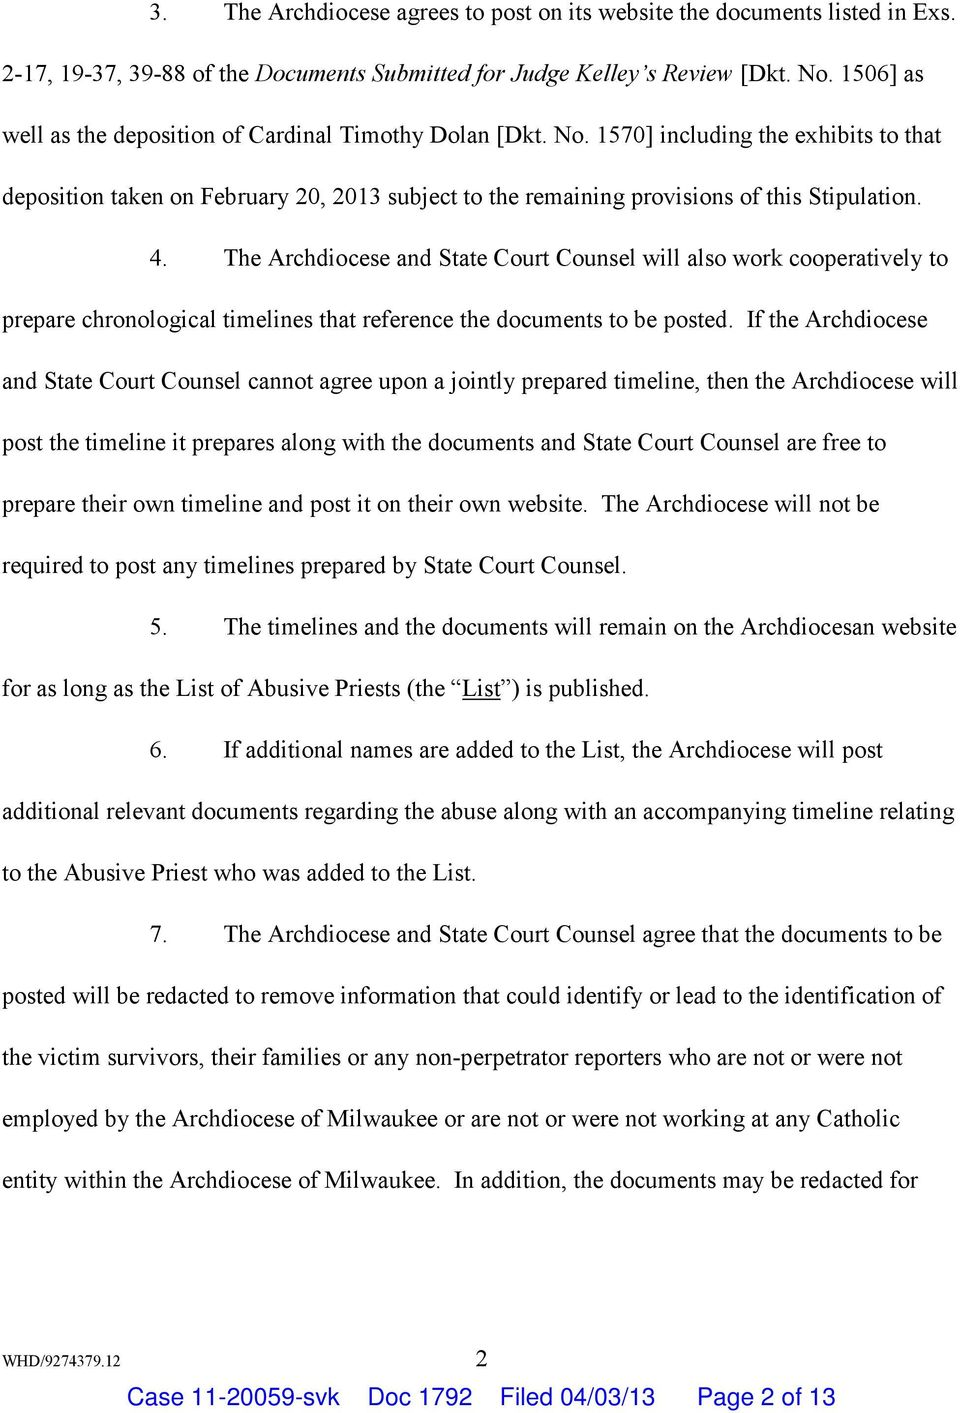 4. The Archdiocese and State Court Counsel will also work cooperatively to prepare chronological timelines that reference the documents to be posted.